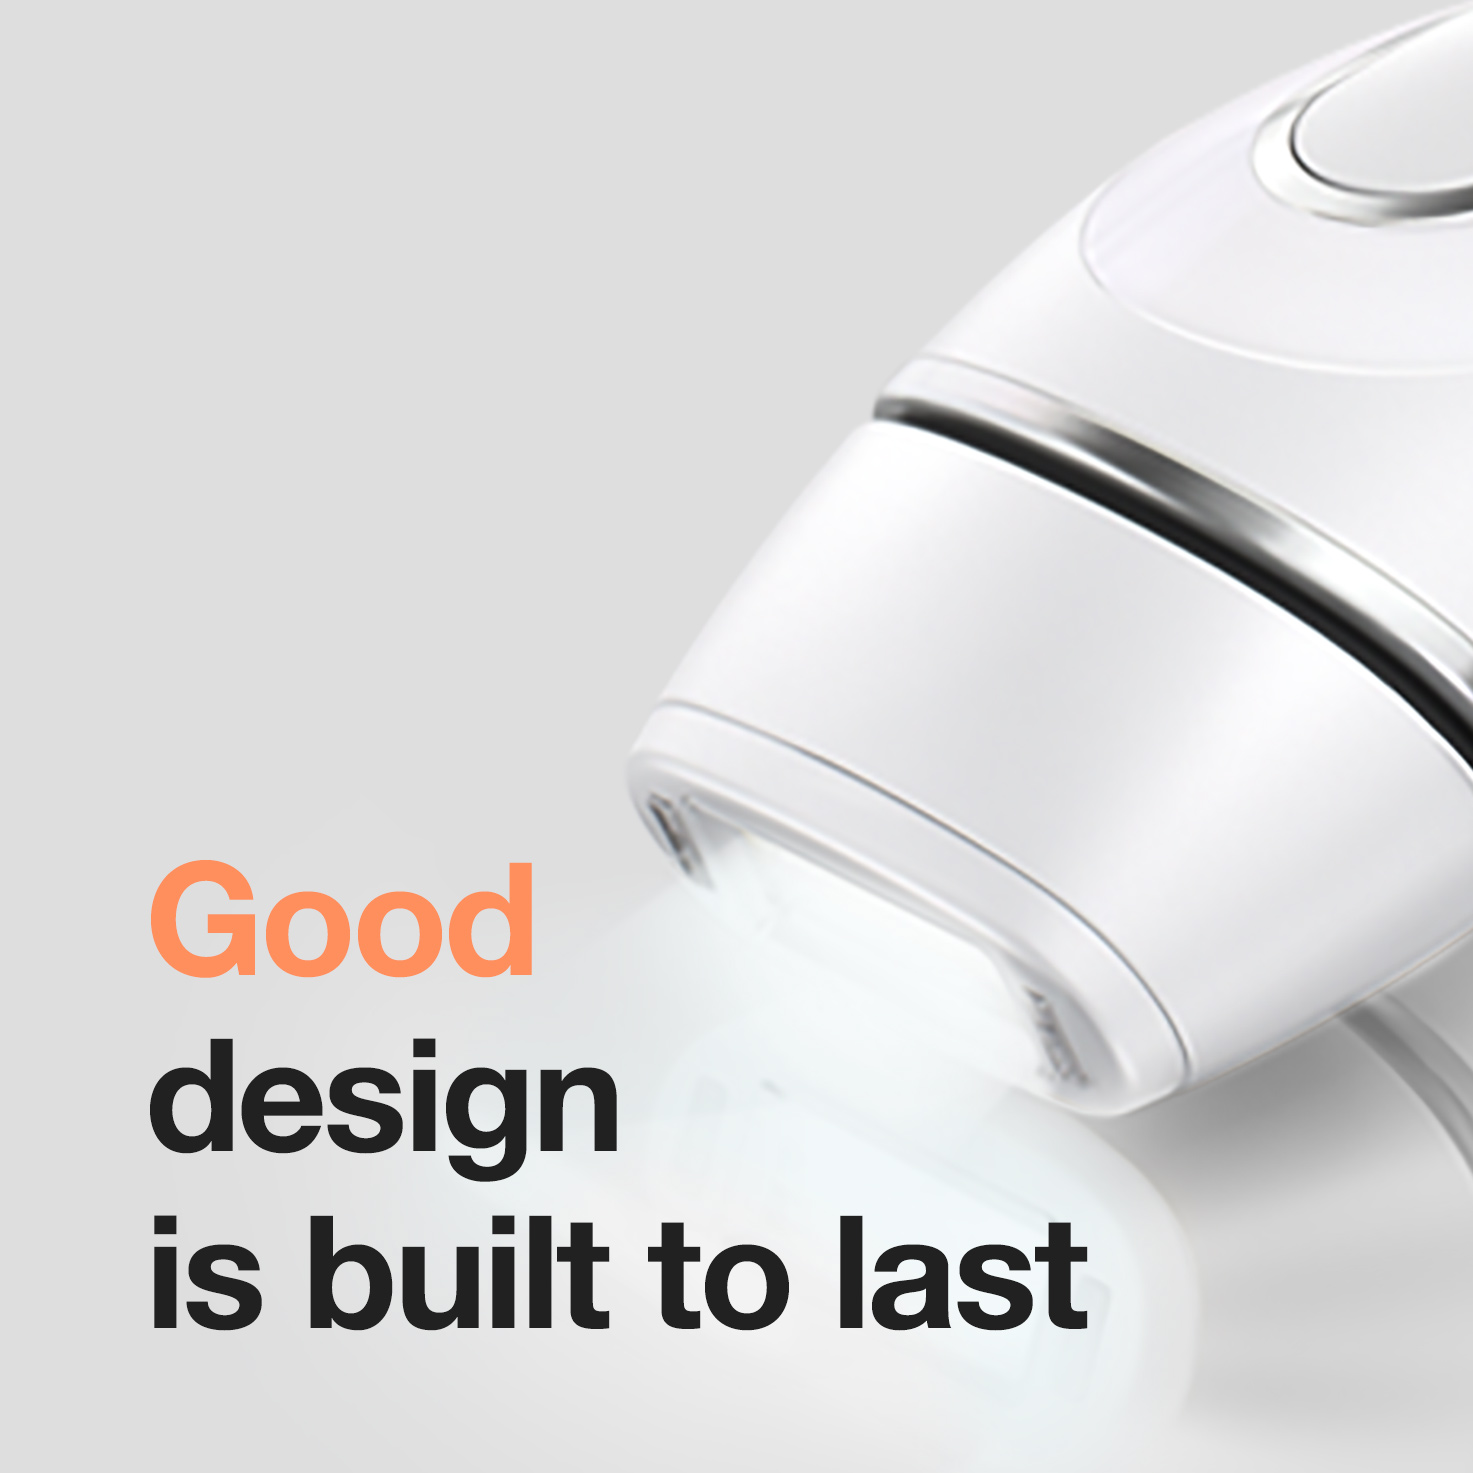 Good design is built to last